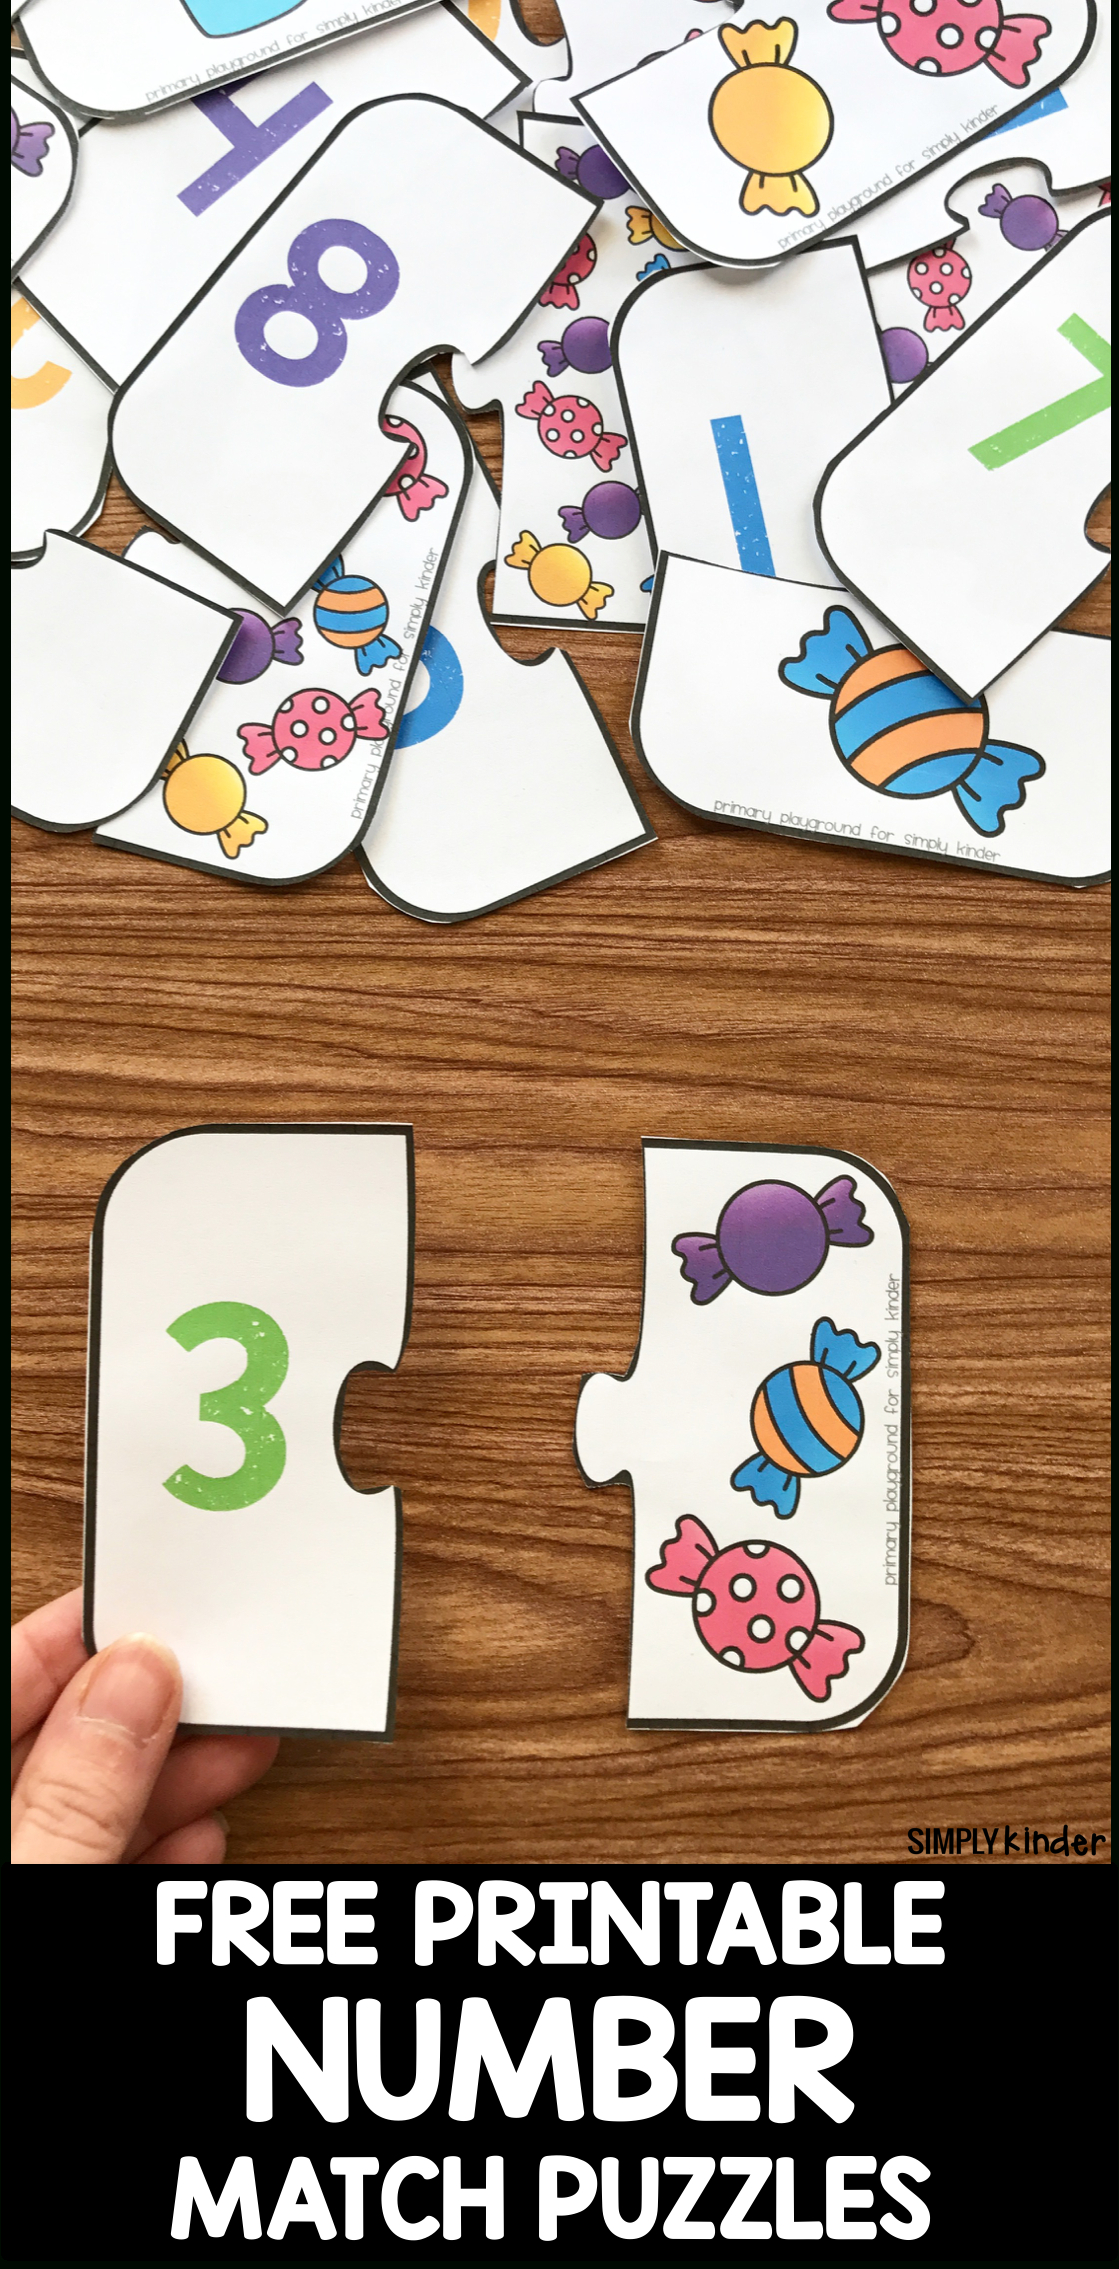 Free Printable Number Match Puzzles - Simply Kinder - Printable Puzzles For Kindergarten